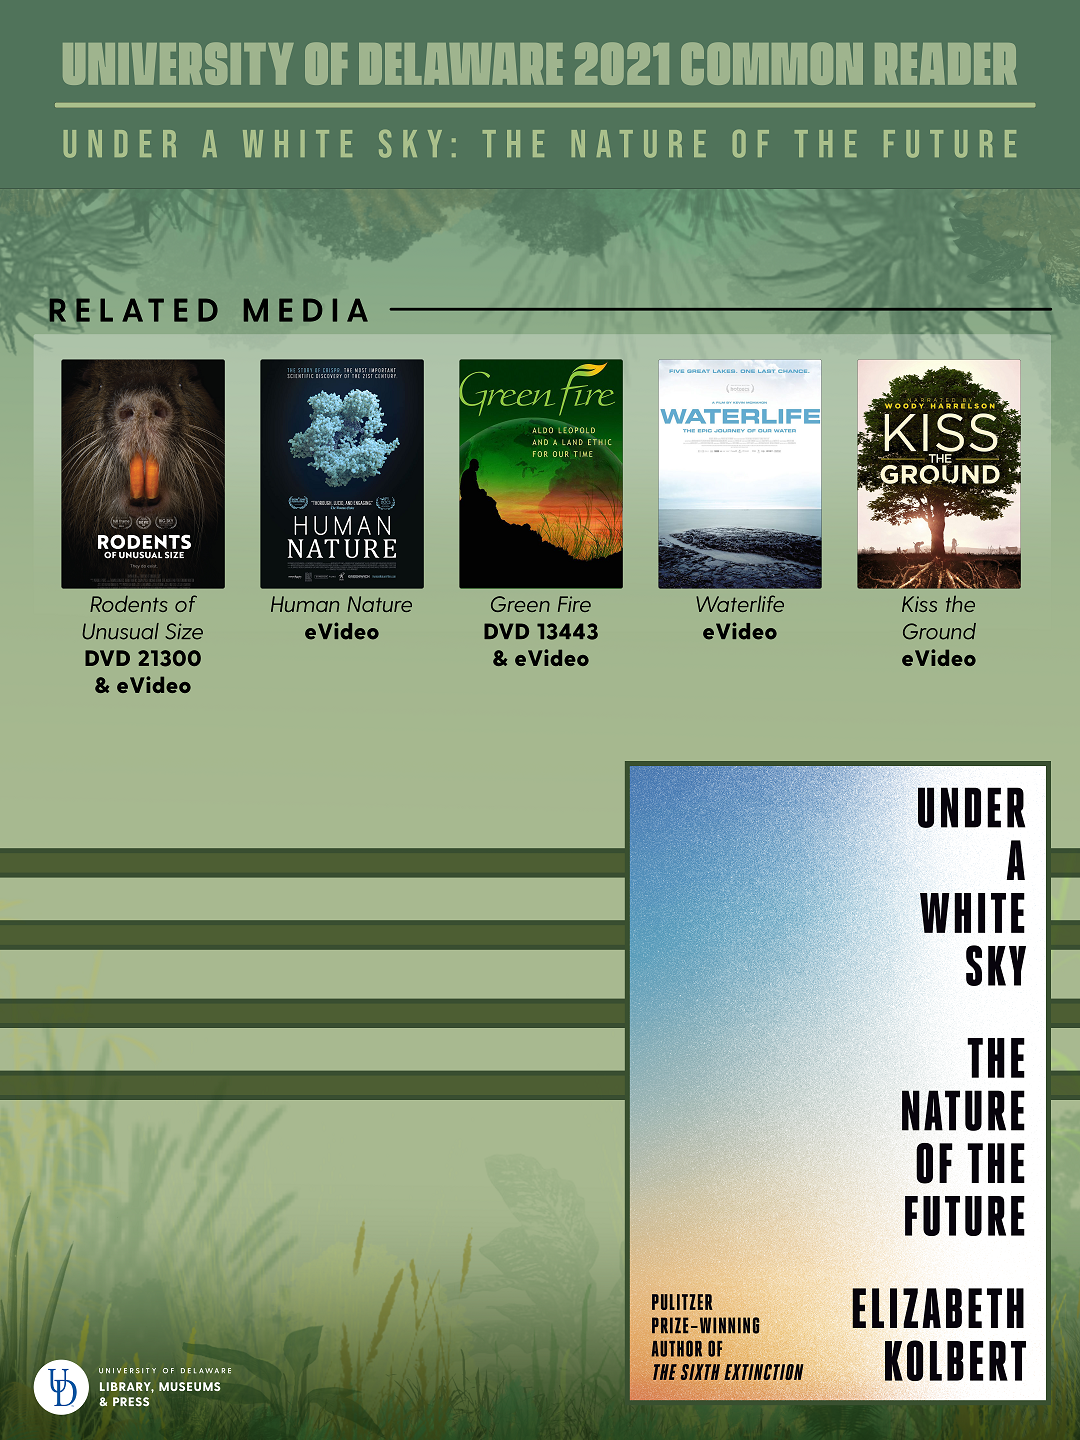 """Poster image with text: """"University of Delaware 2021 Common Reader: Under a White Sky: The Nature of the Future"""" above 5 DVD cover images and book cover art, with a green background and a grassland-shaped border at the bottom"""